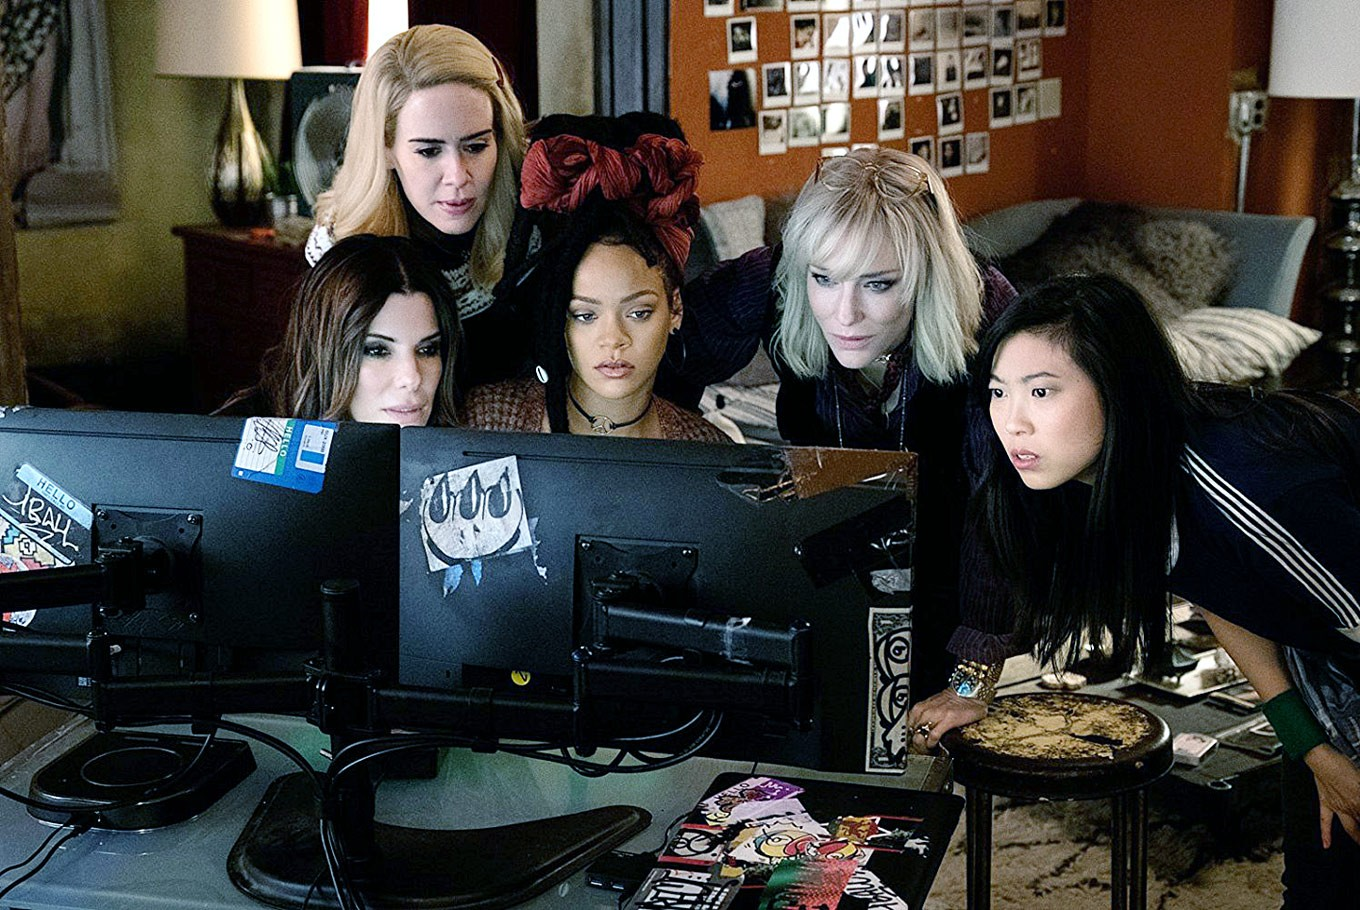 Ocean's 8: The importance of an all-female main cast